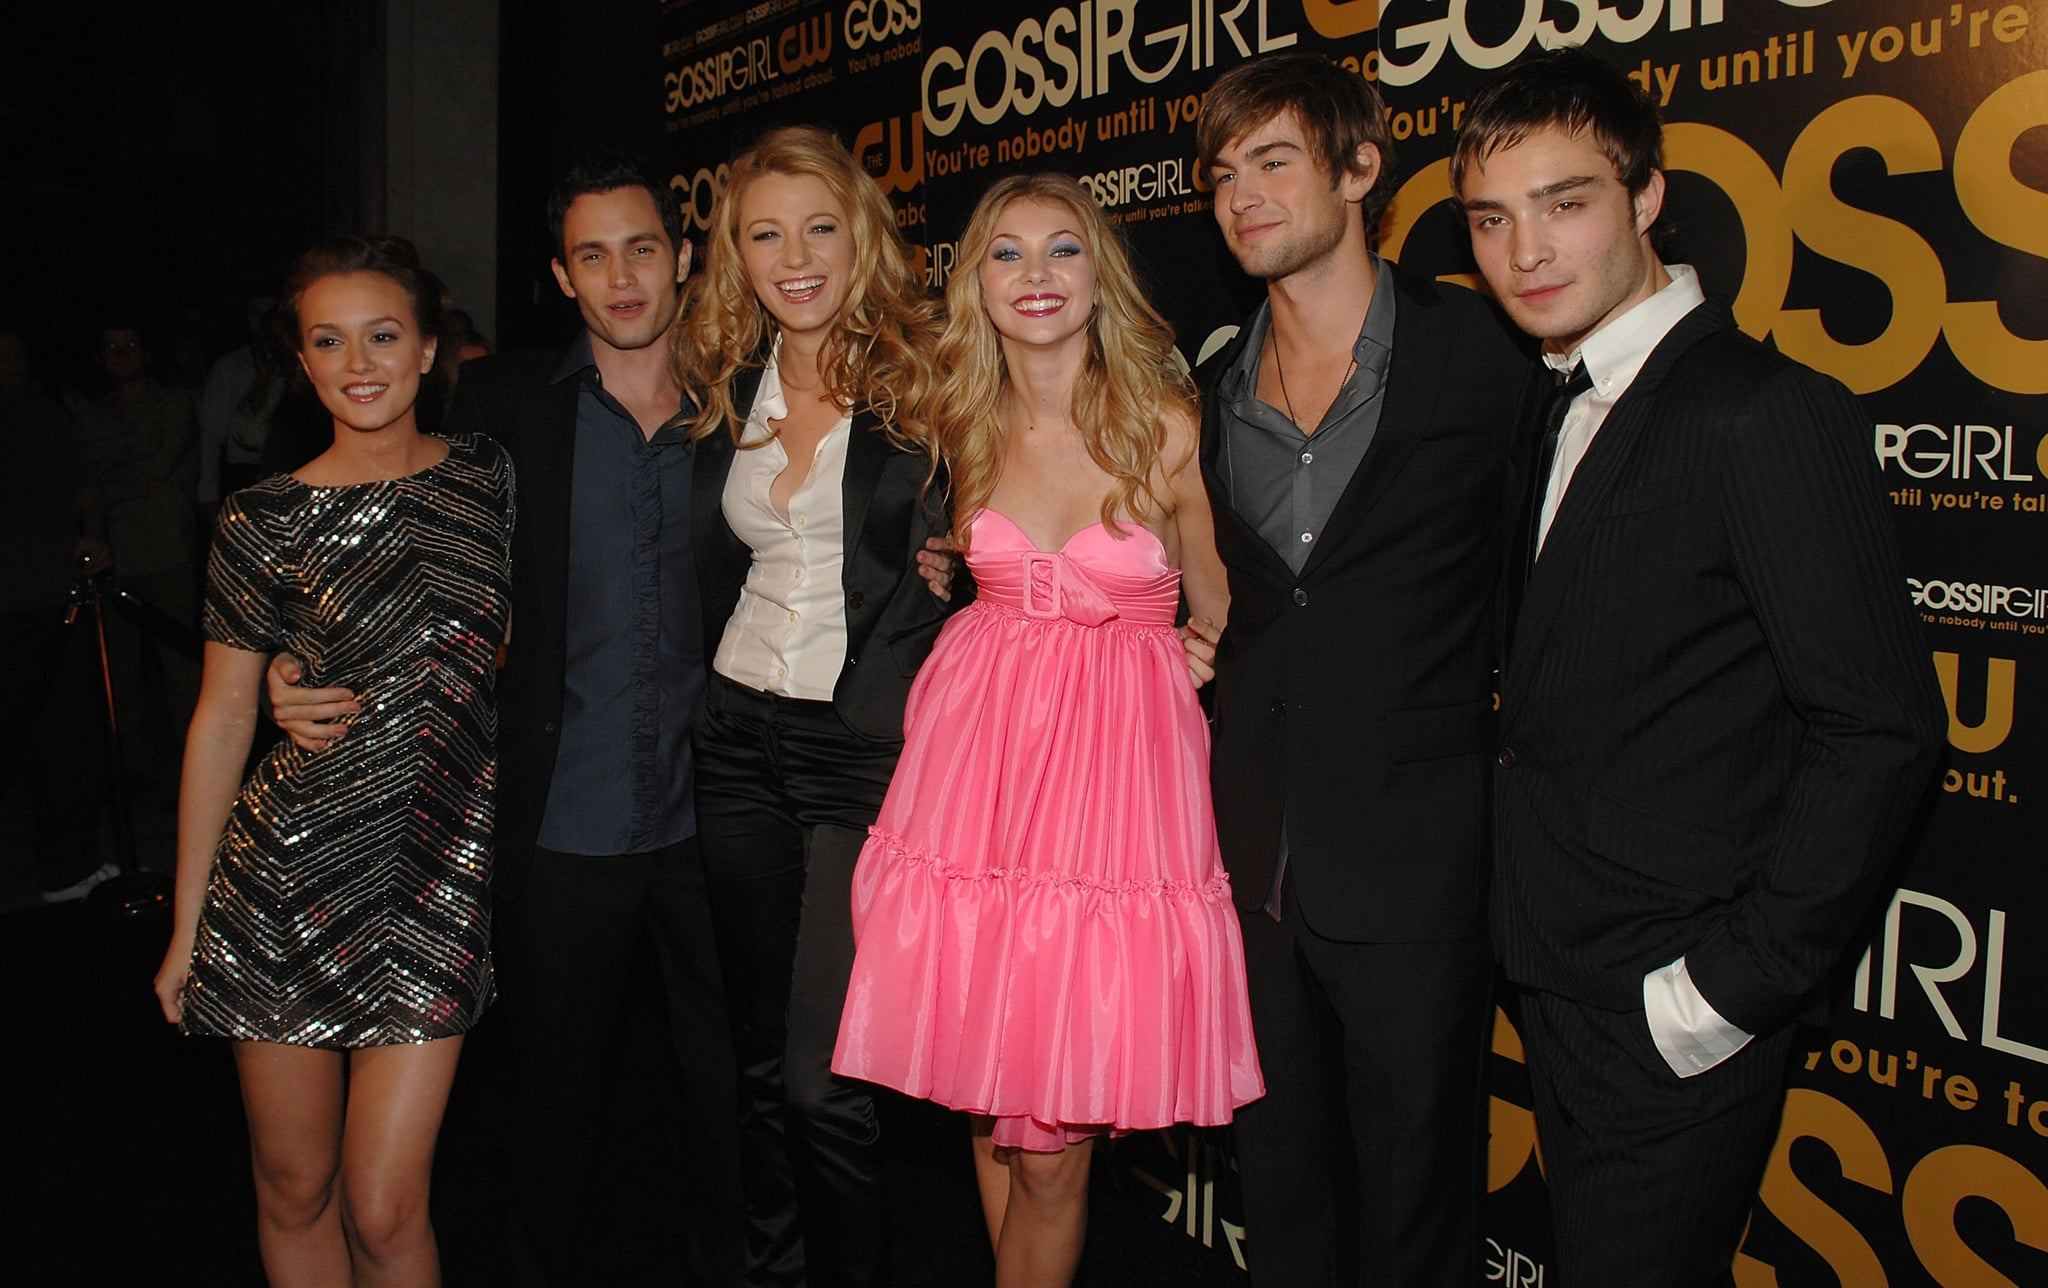 The entire cast of Gossip Girl stepped out for their September 2007 premiere party in NYC.